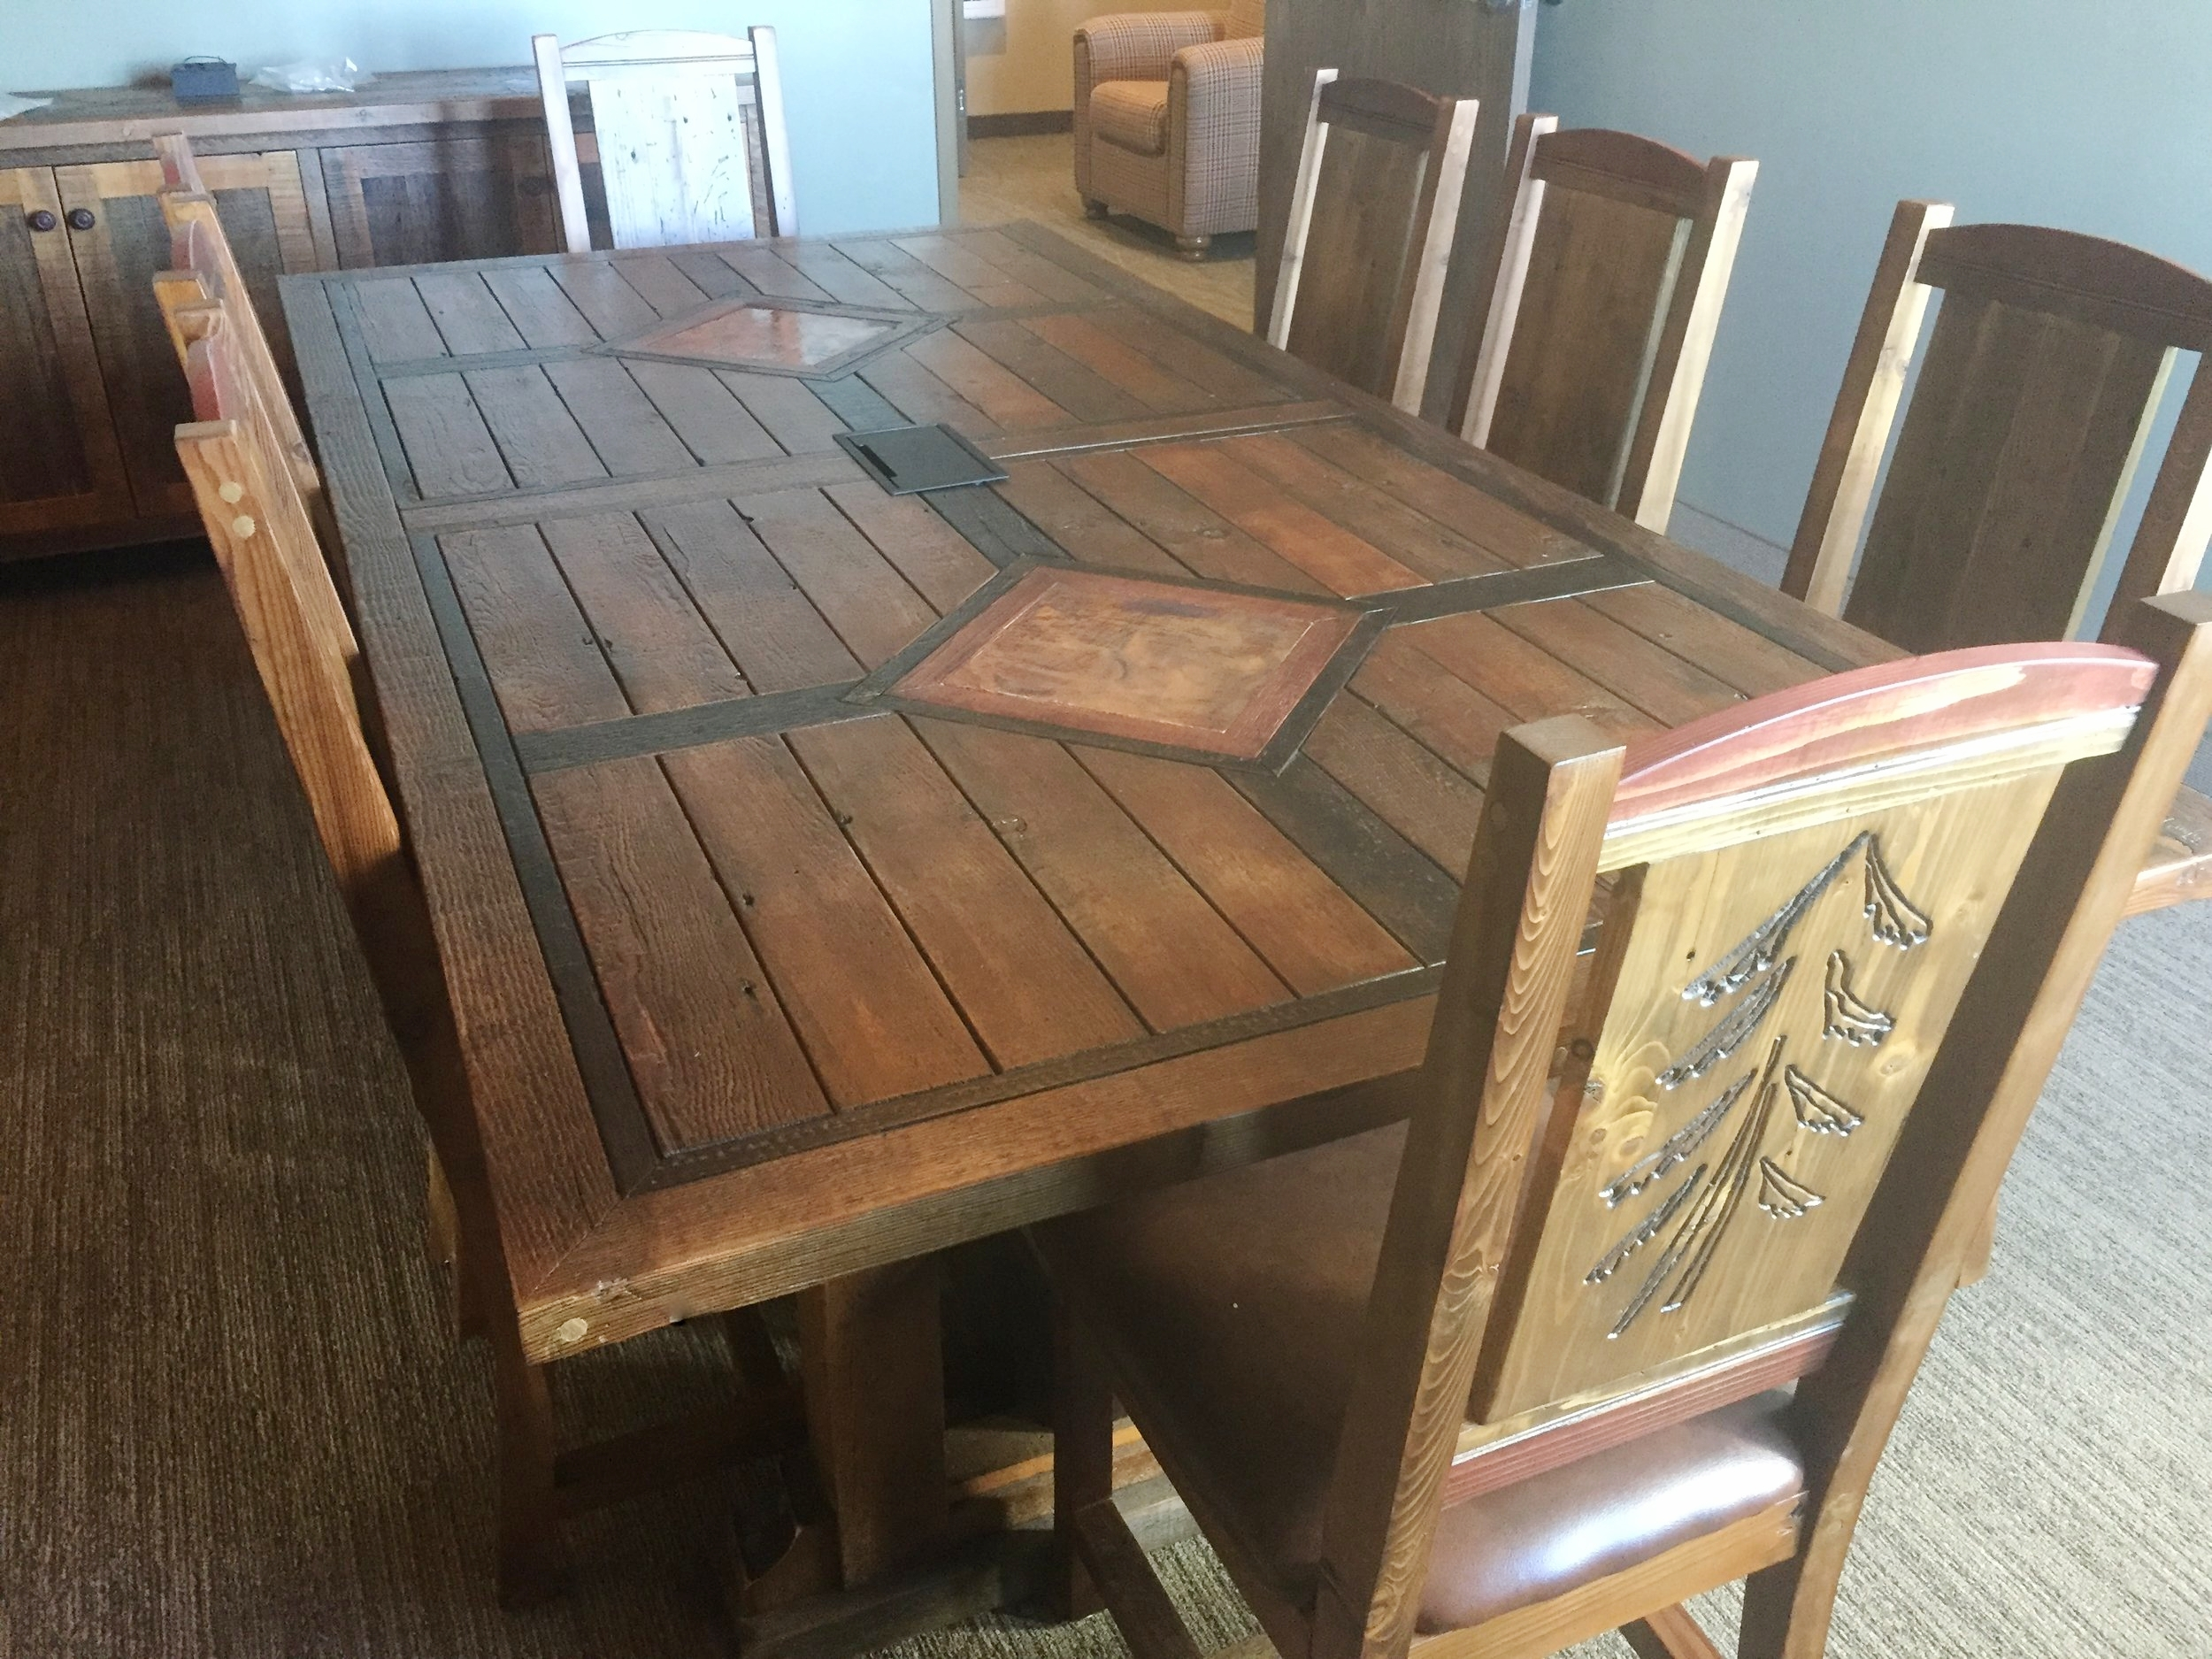 Barn Wood Furniture - Rustic Barnwood and Log Furniture By Vienna